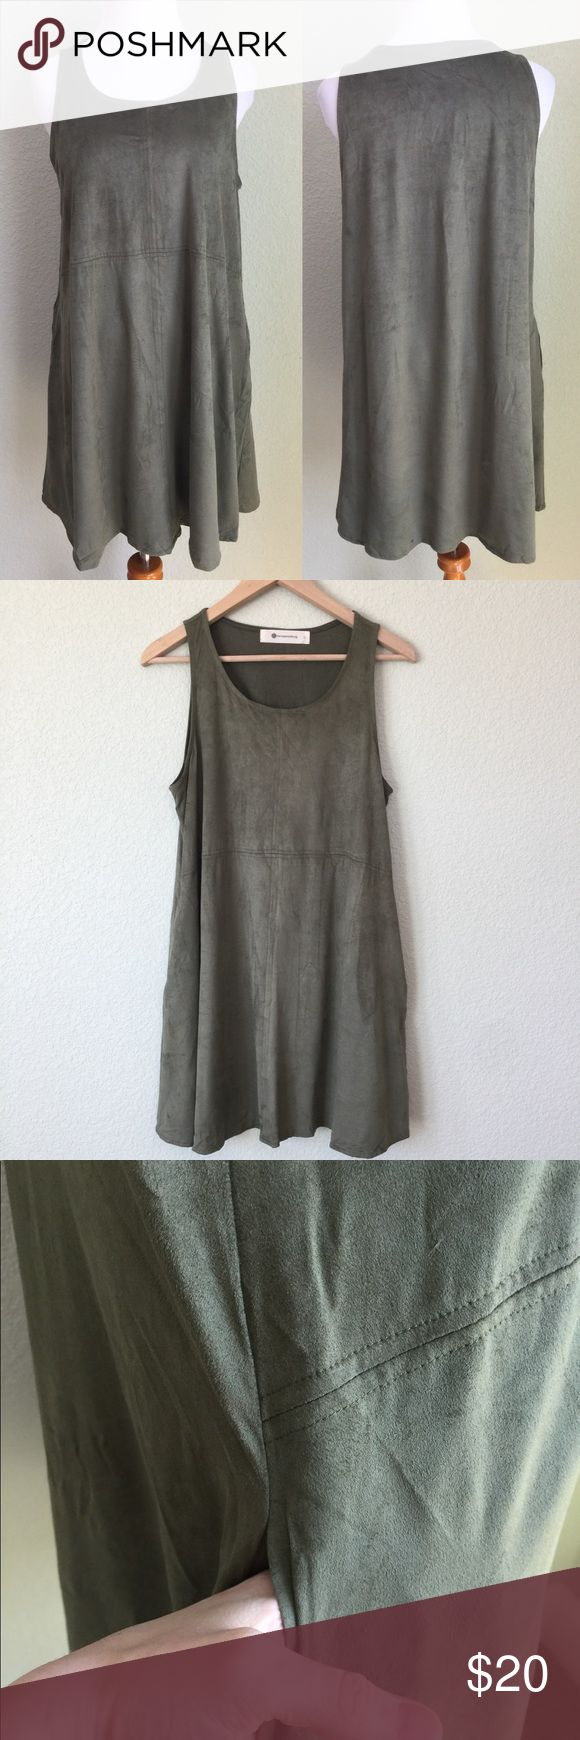 """NWOT Green Soft Suede Velvety Dress Sleeveless New, tag fell off, never worn. Sleeveless green dress. Soft suedes feel, not too thick and light enough for spring. 32"""" long, 20"""" armpit to armpit.    Has 2 pockets!    Fast shipping, no trades. Bundle discounts and offers welcome. The Impeccable Pig Dresses Midi"""